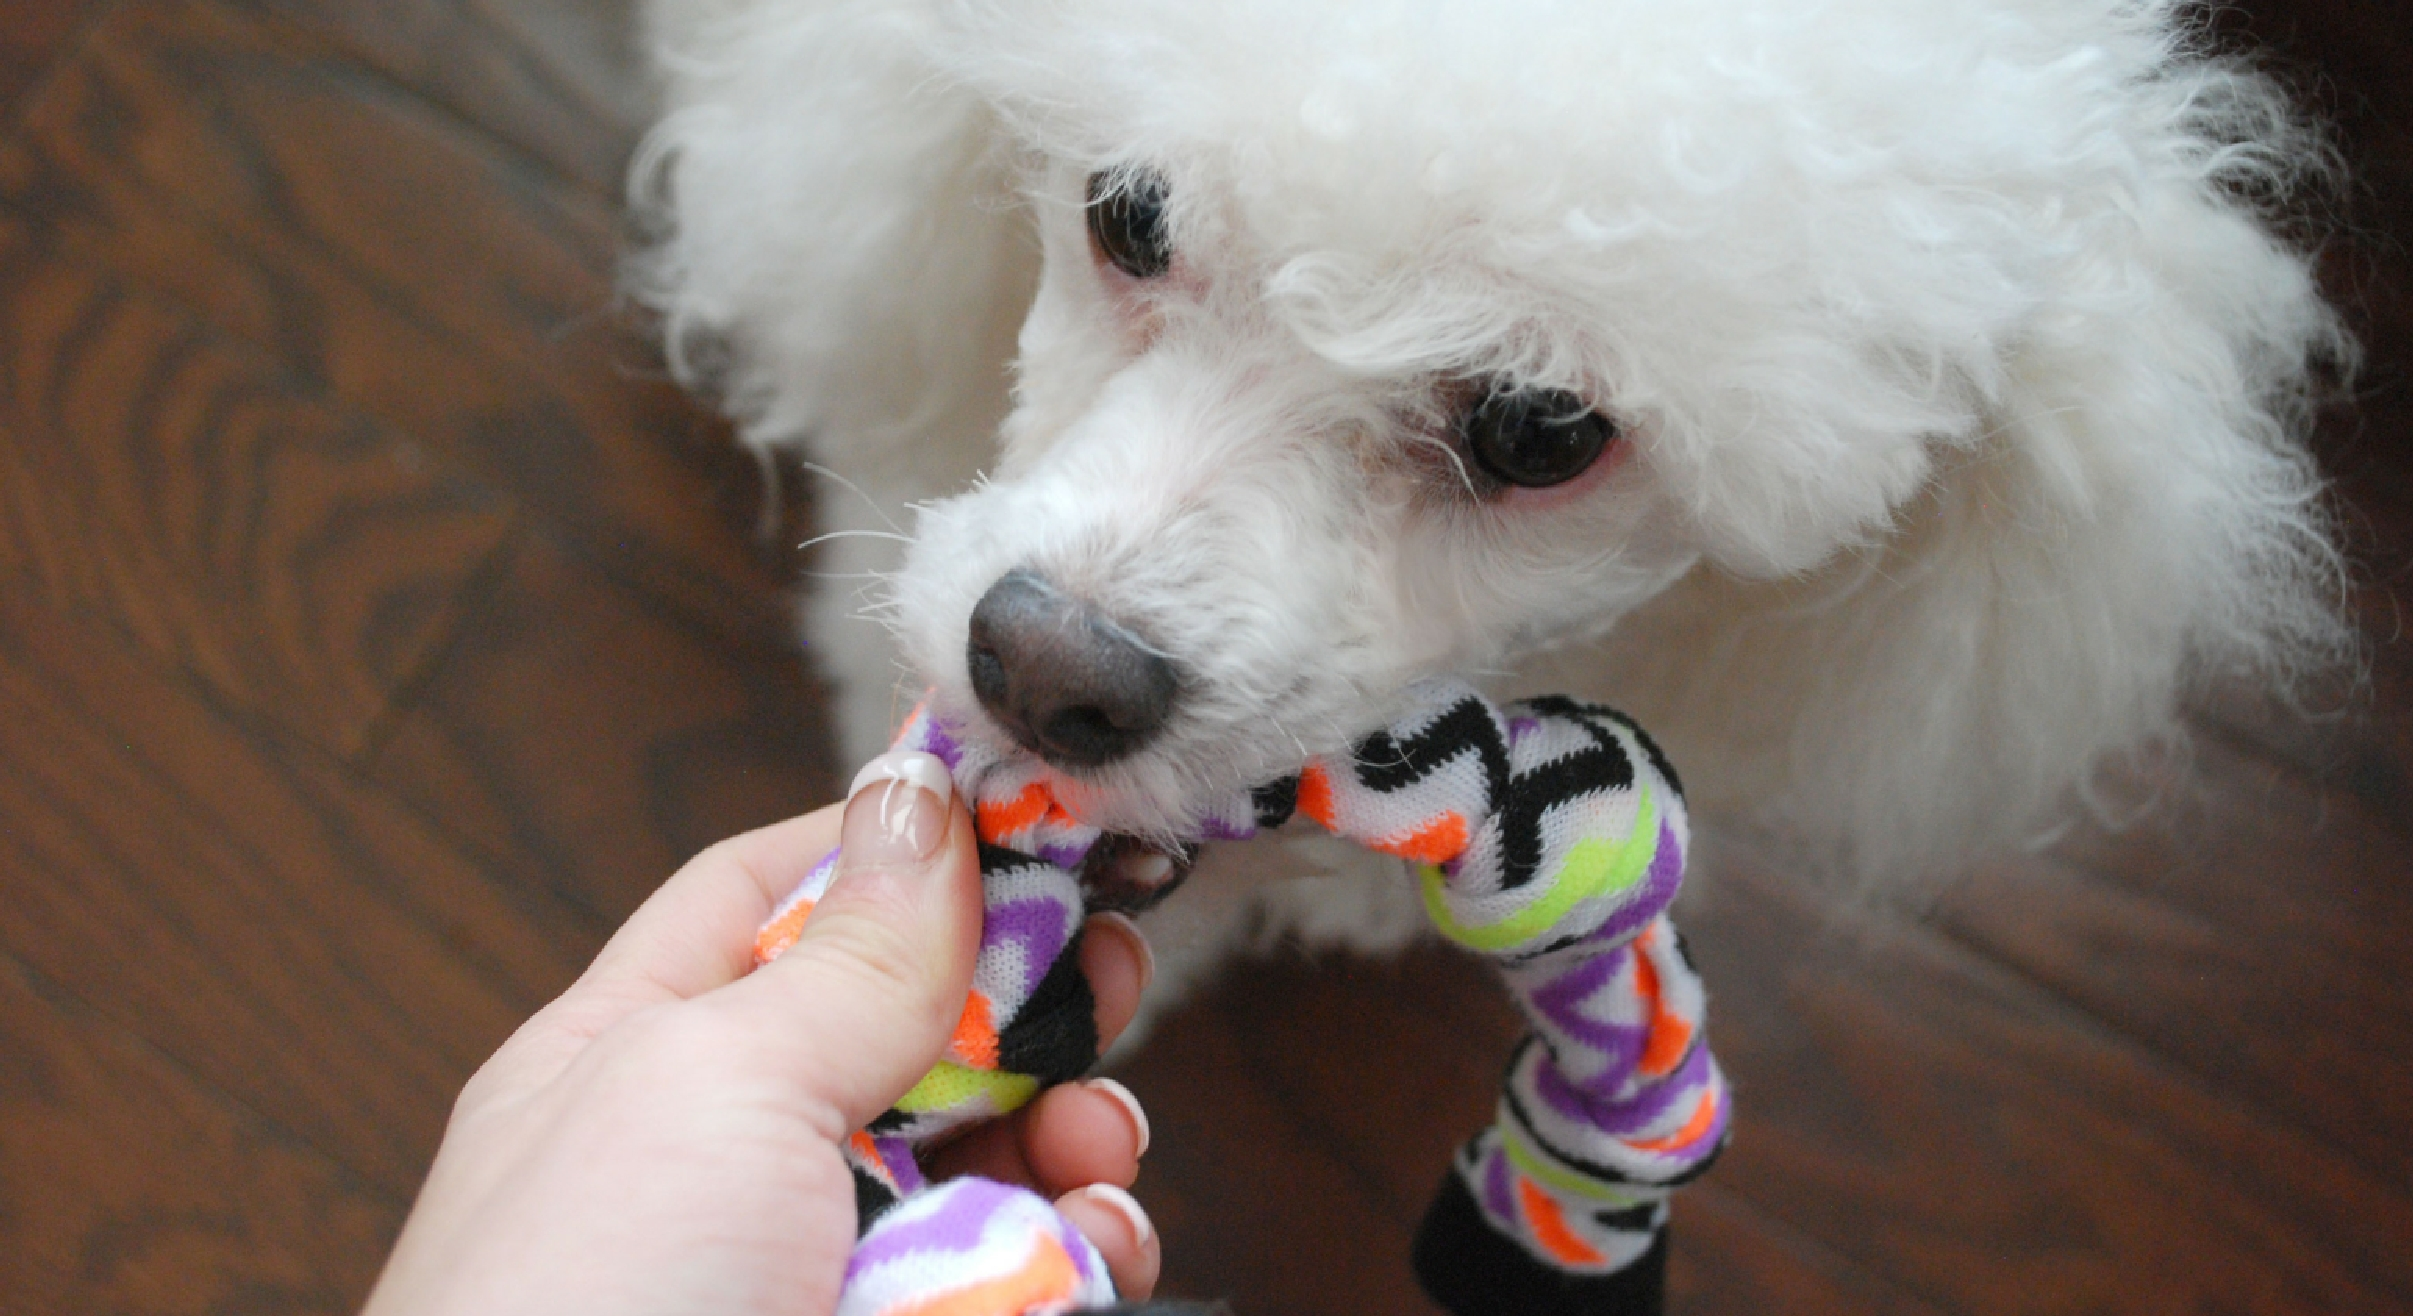 No Sew DIY Dog Toys 4 Ways To Turn Old Socks Into Puppy Play